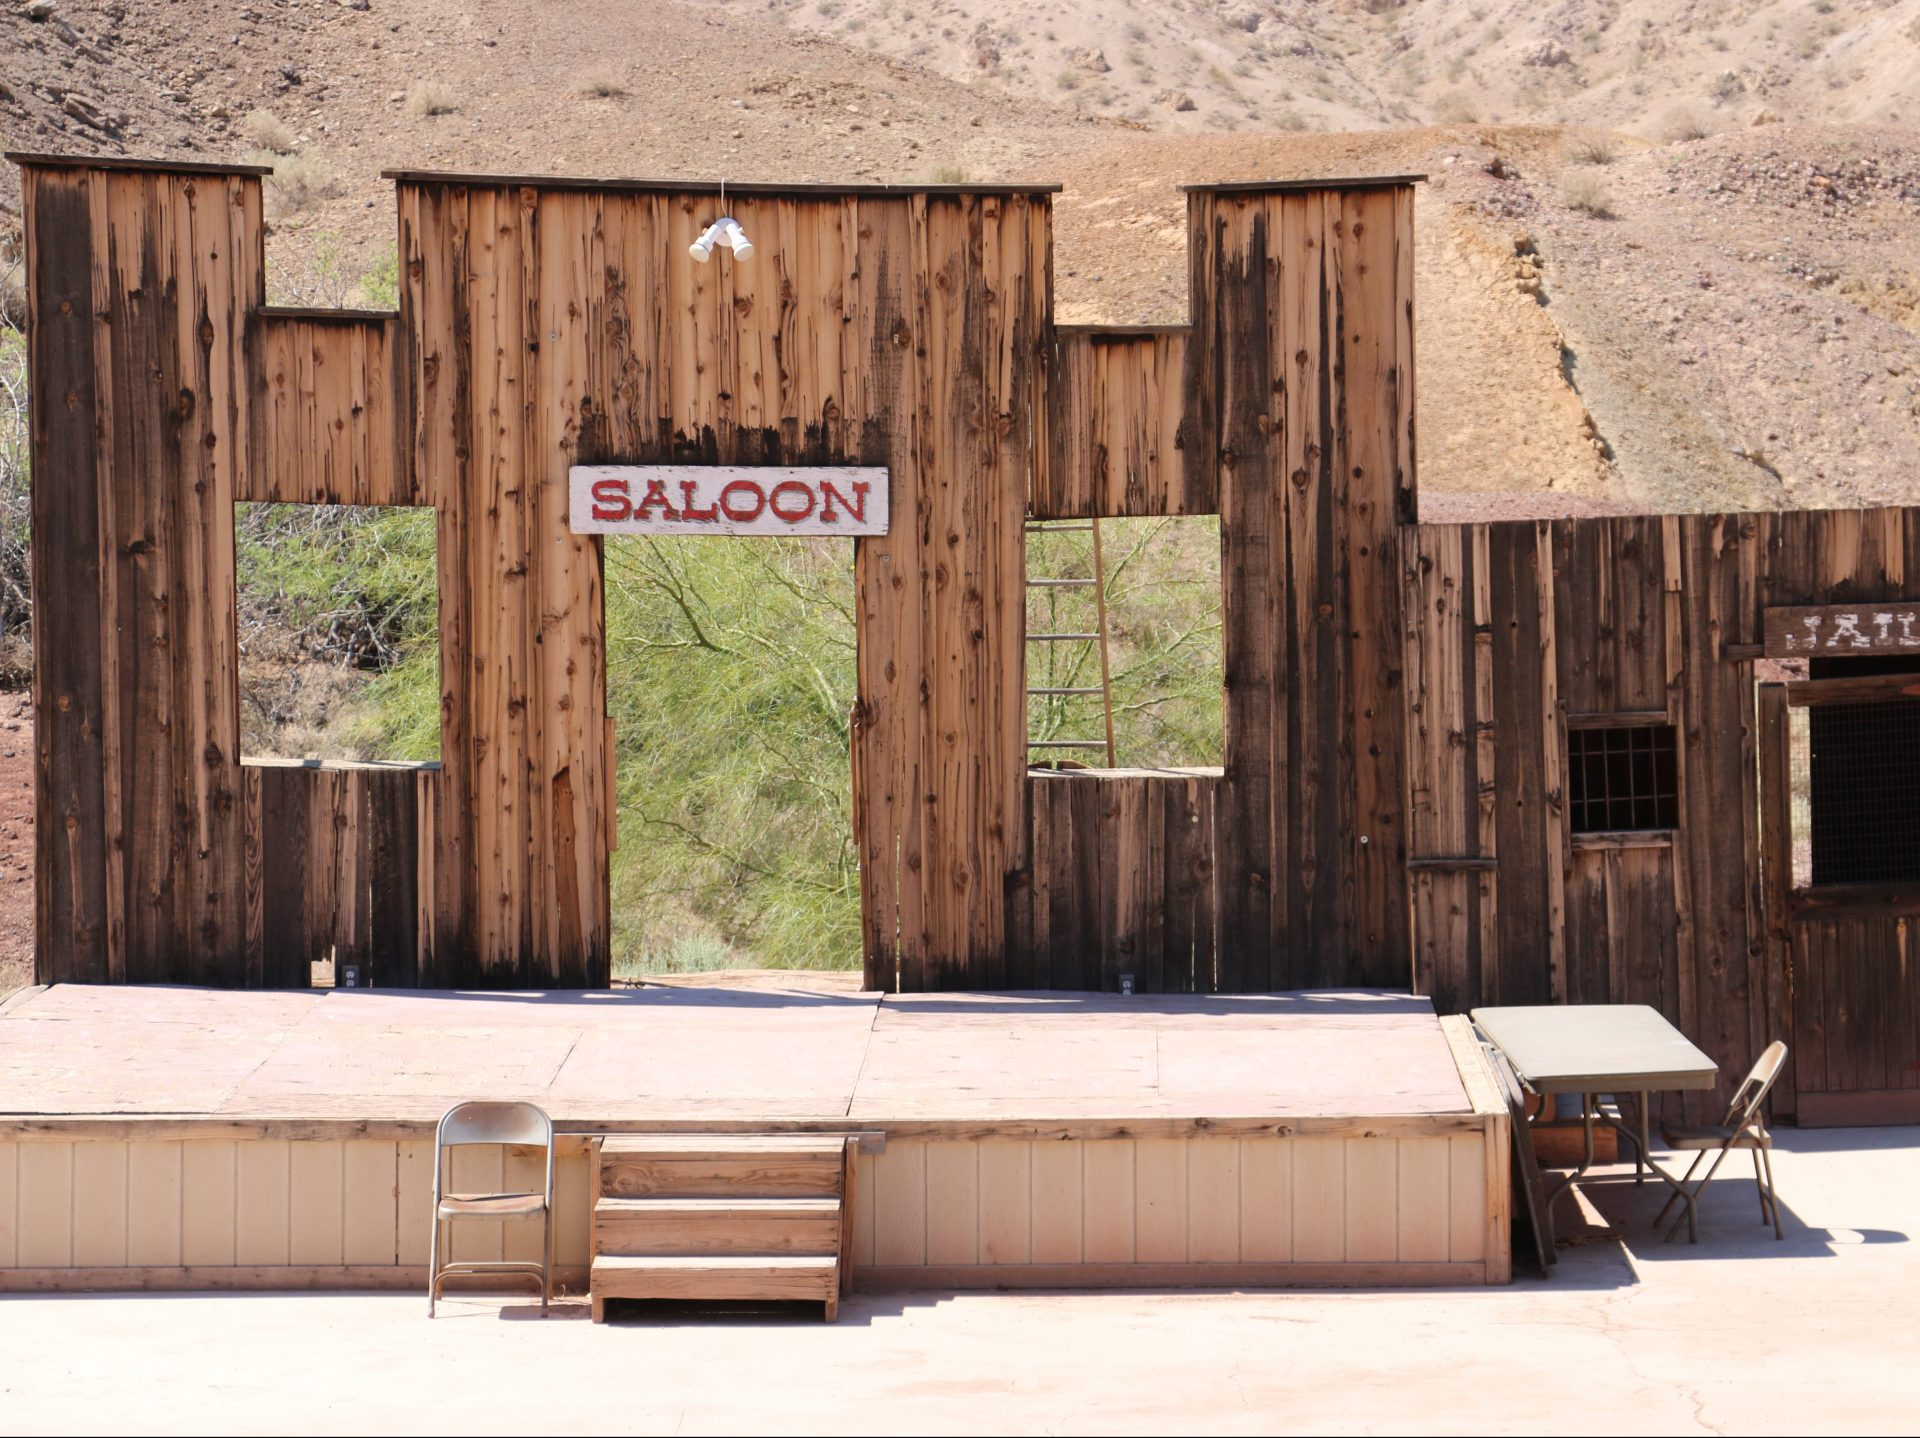 Saloon at Calico